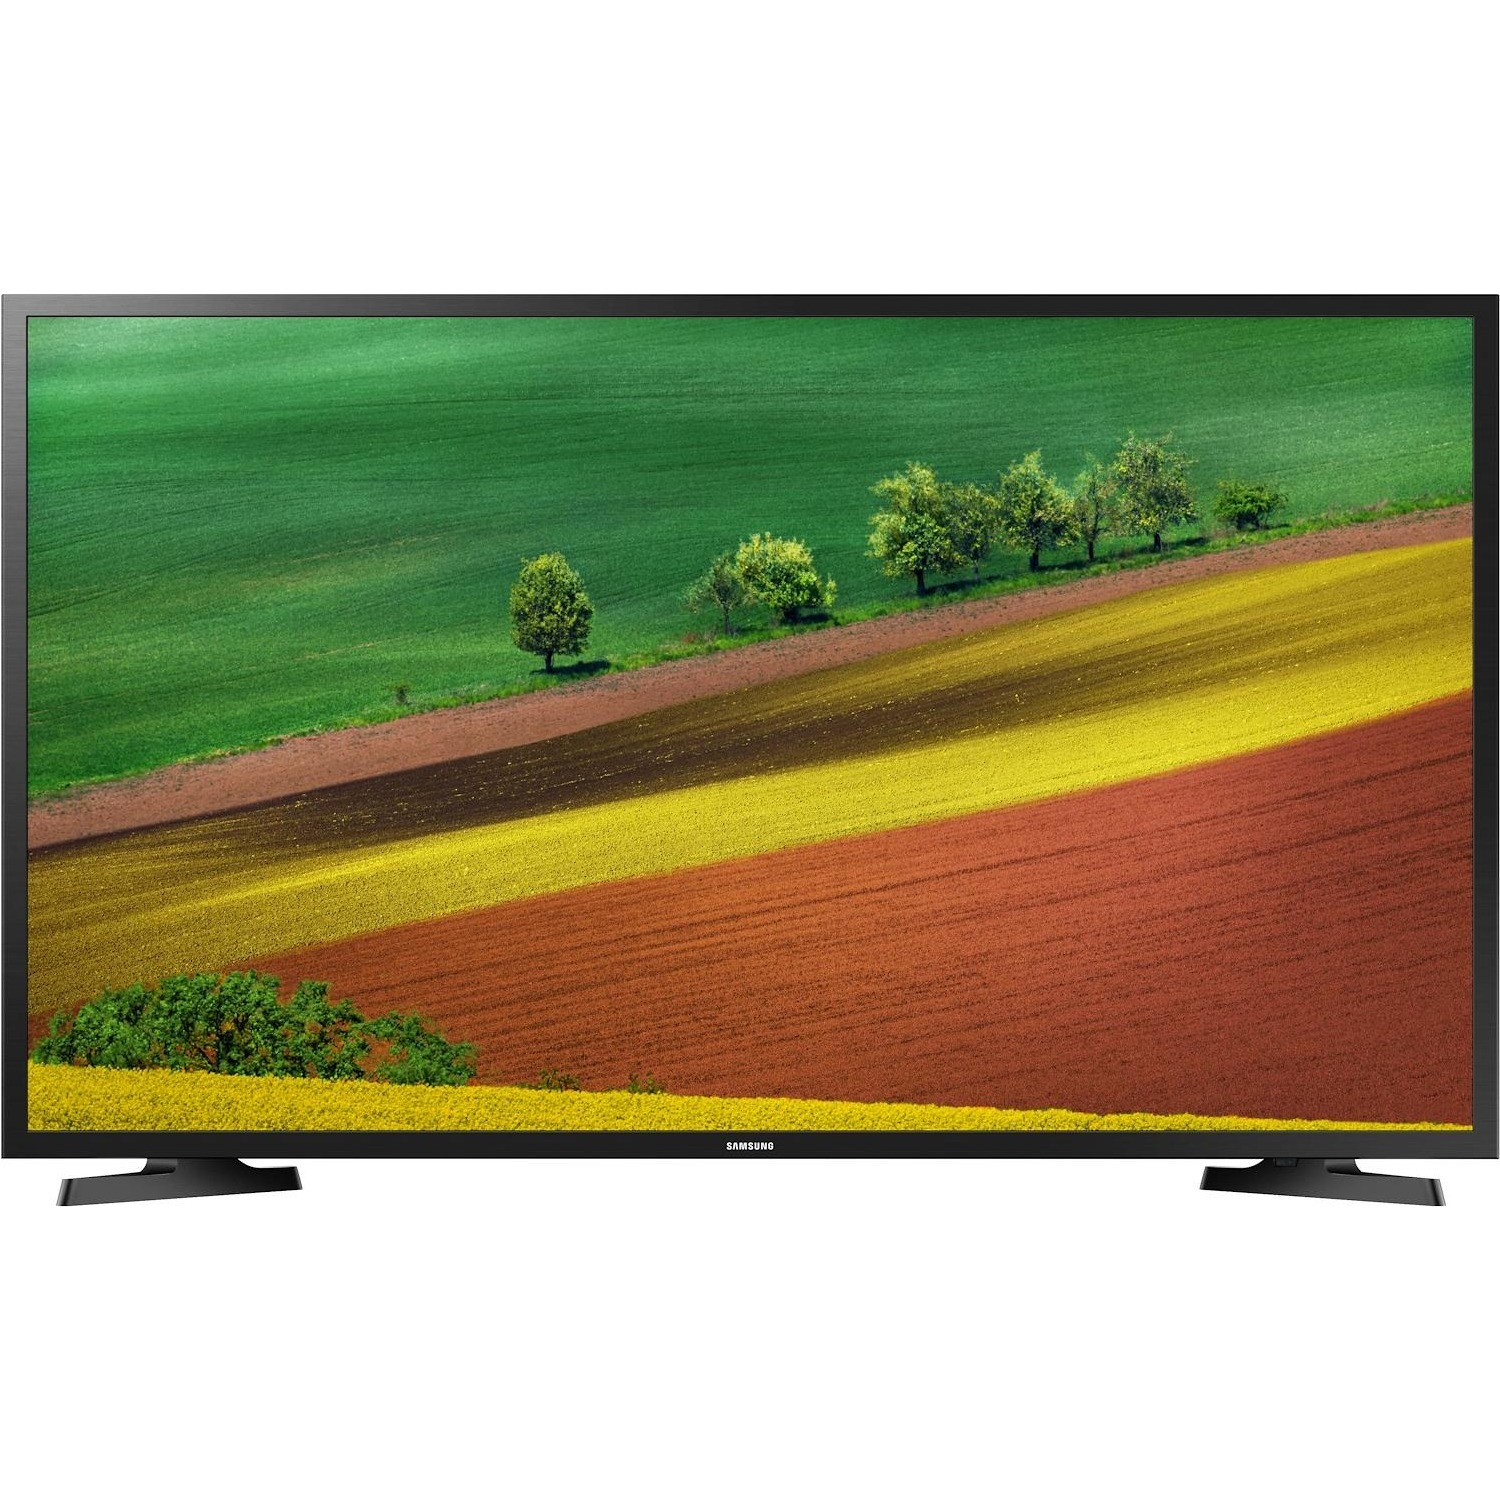 Immagine per TV LED Samsung 32N4000 da DIMOStore